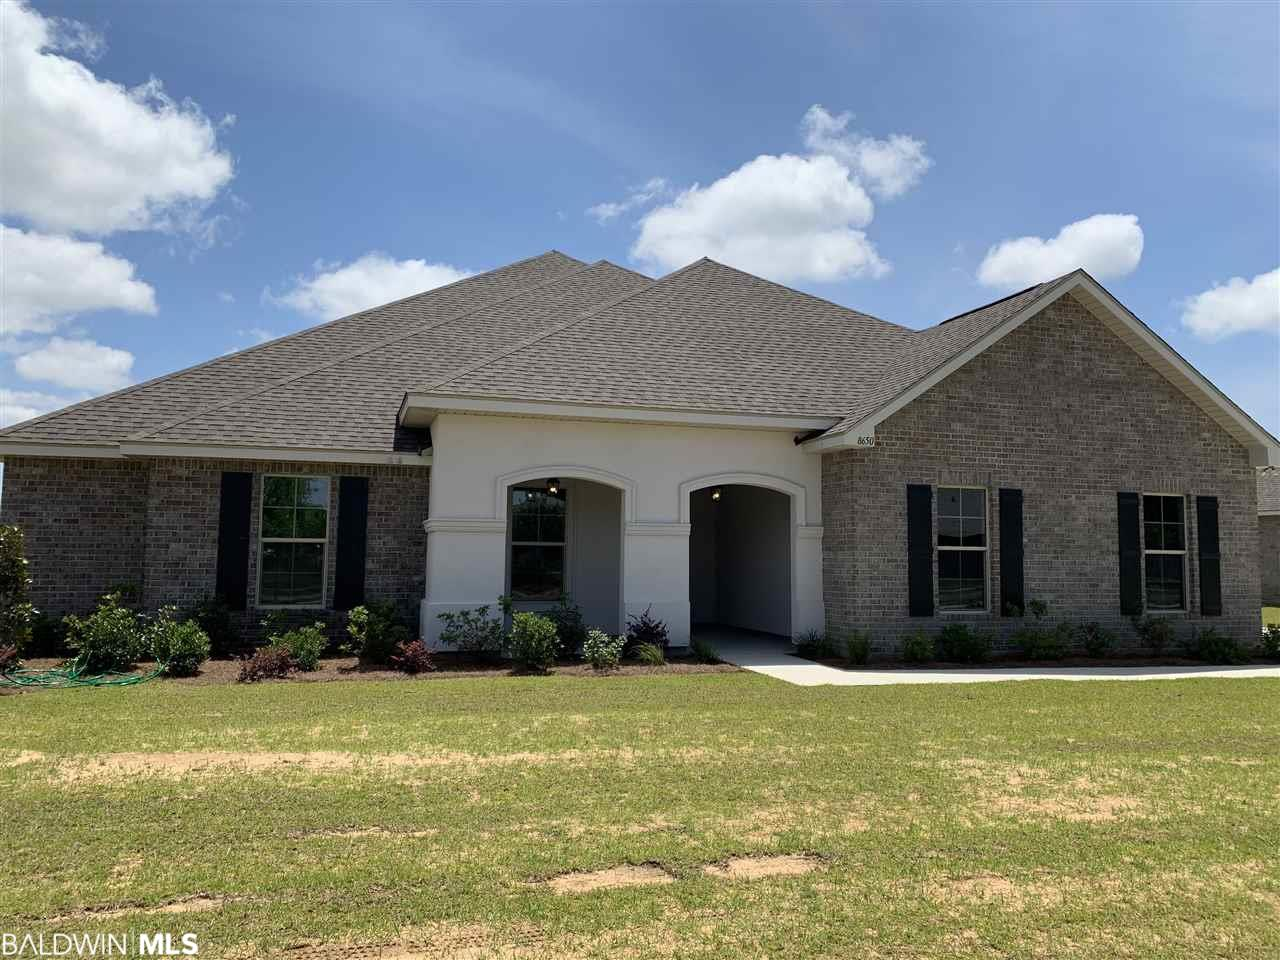 8650 Manley Road, Fairhope, AL 36532